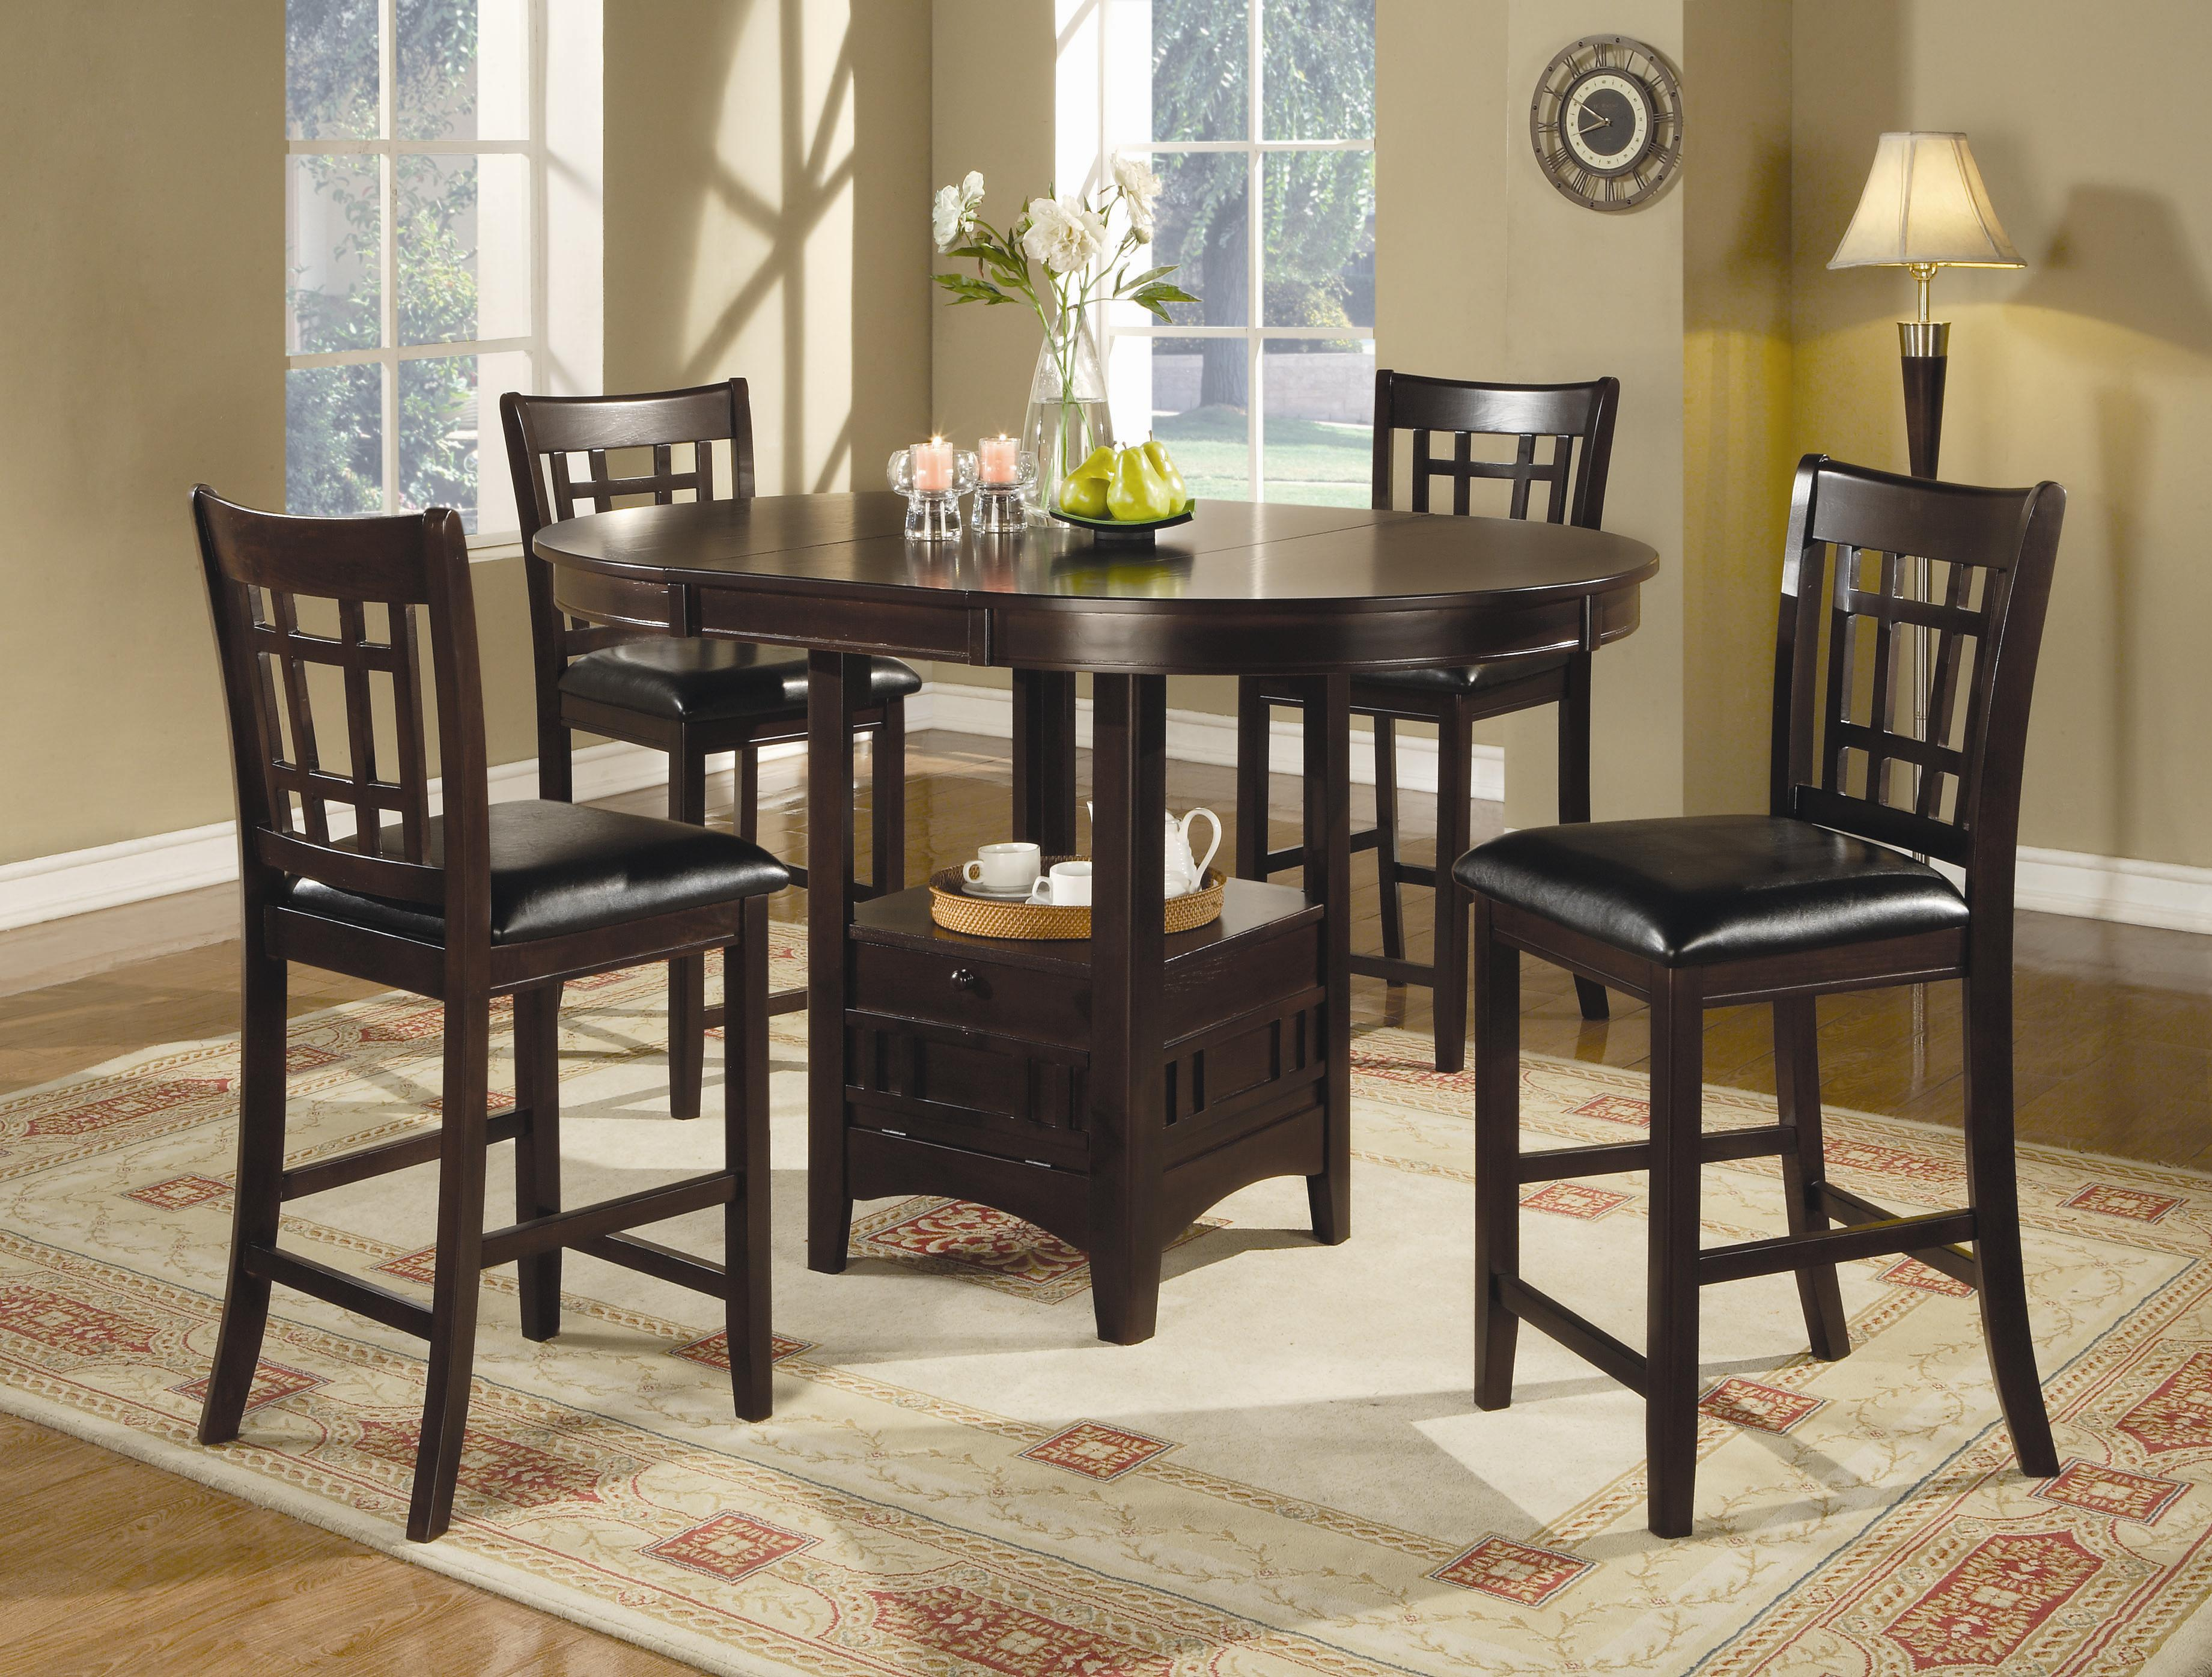 Lavon 5 Piece Counter Table and Chair Set by Coaster at Northeast Factory Direct